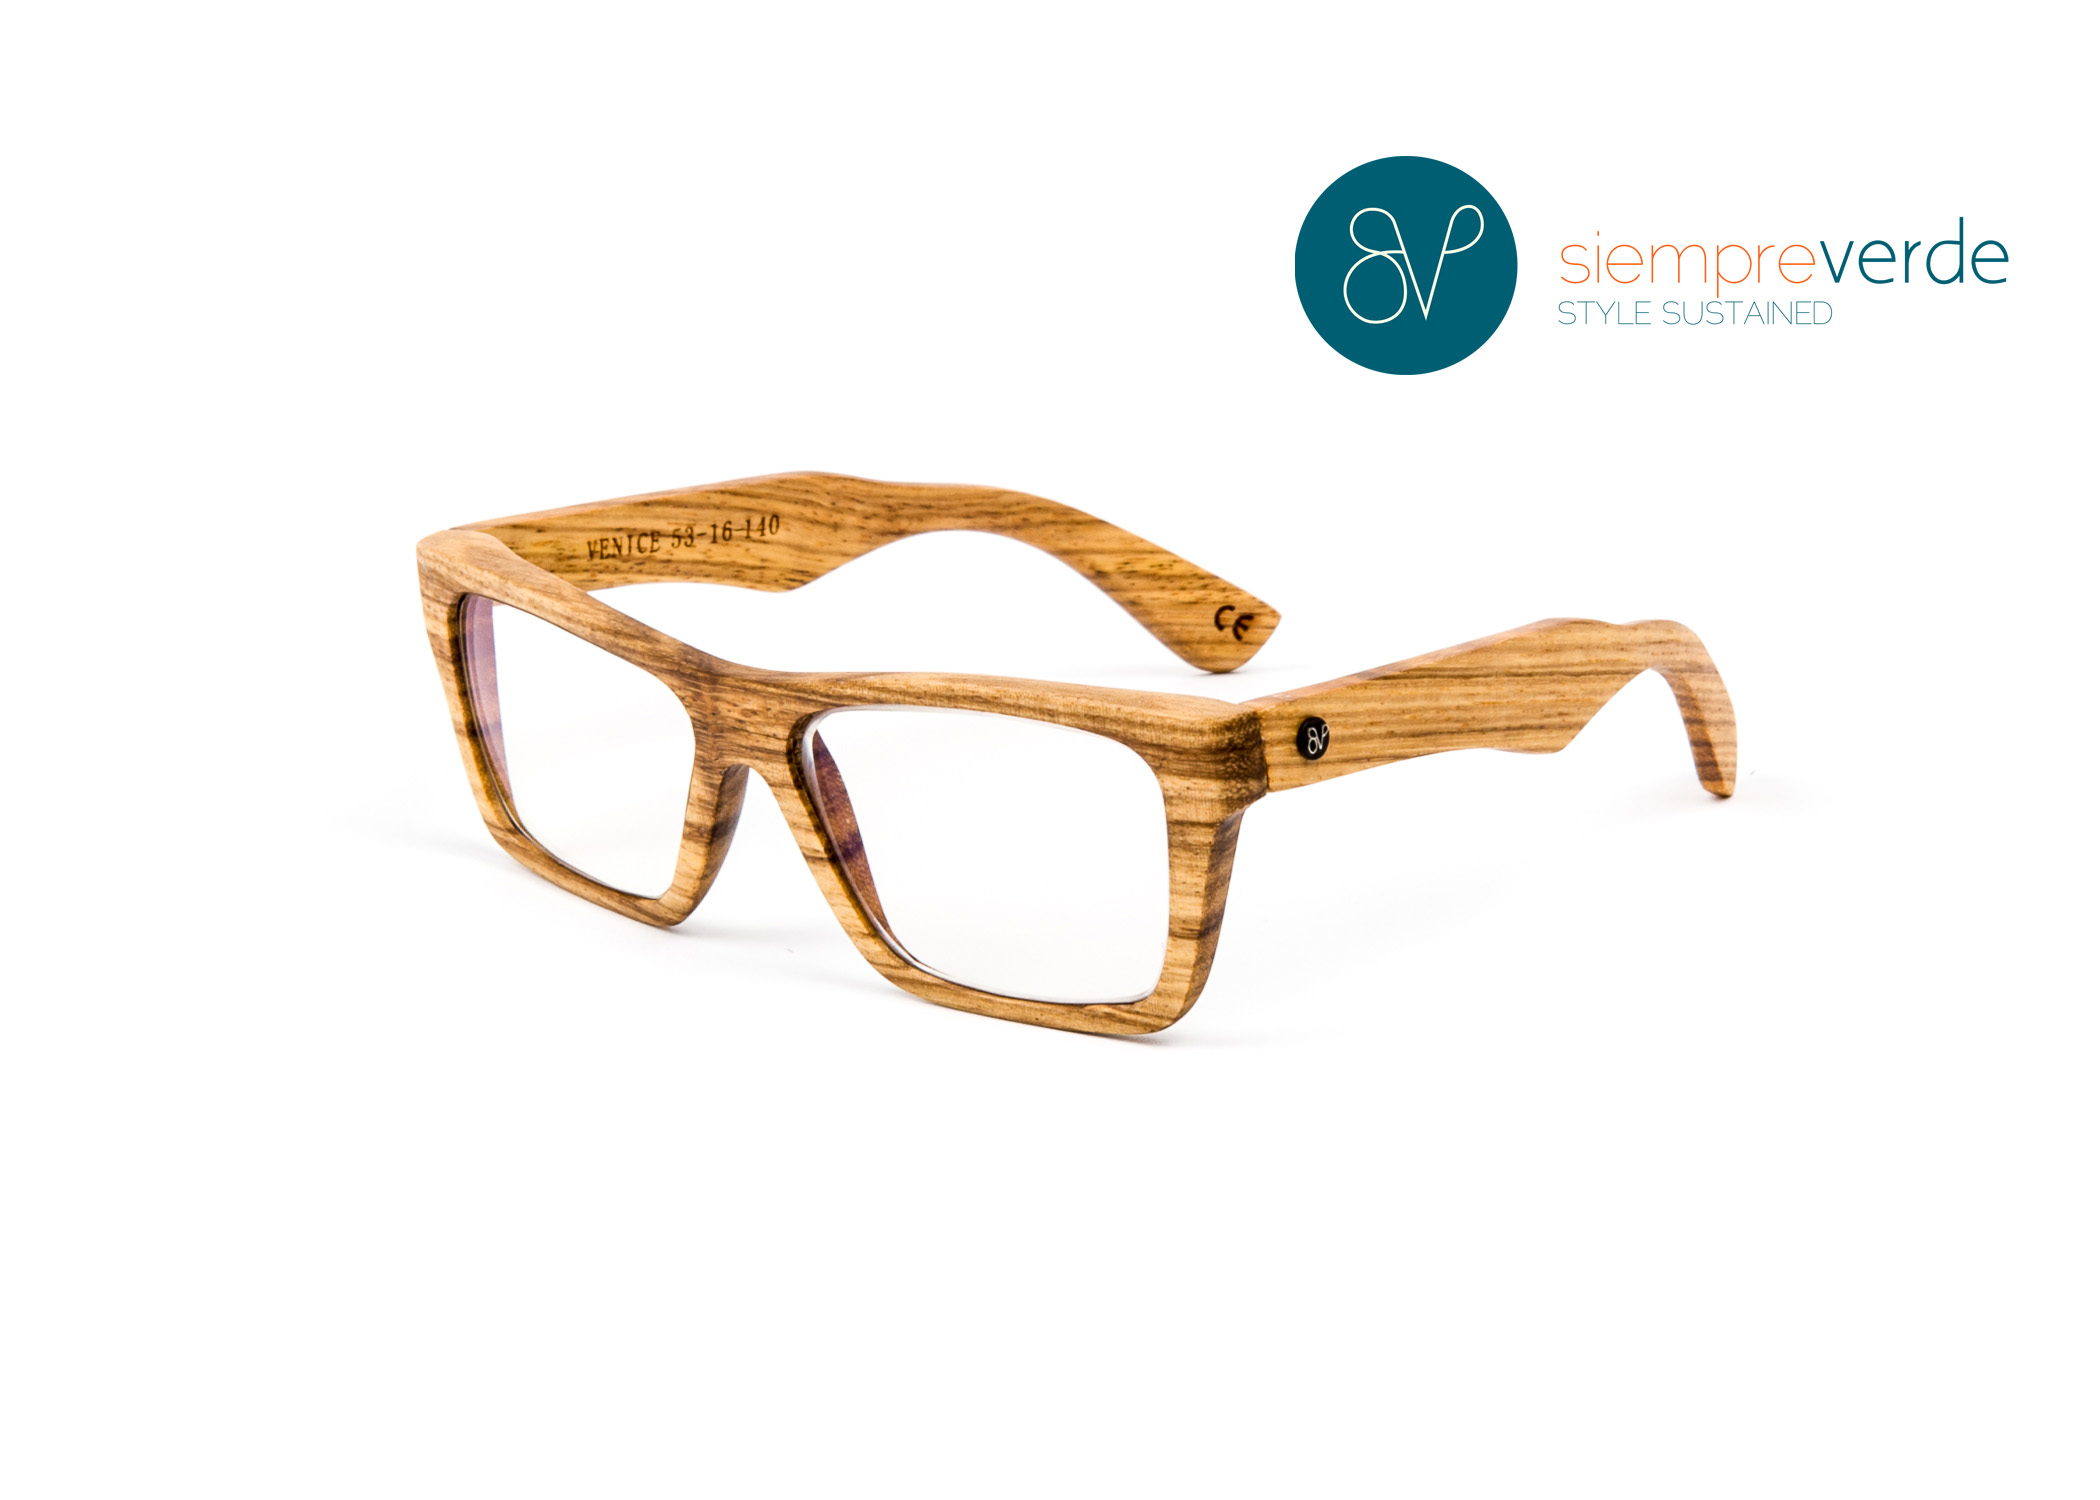 siempre verde launches the madera collection wood eyewear